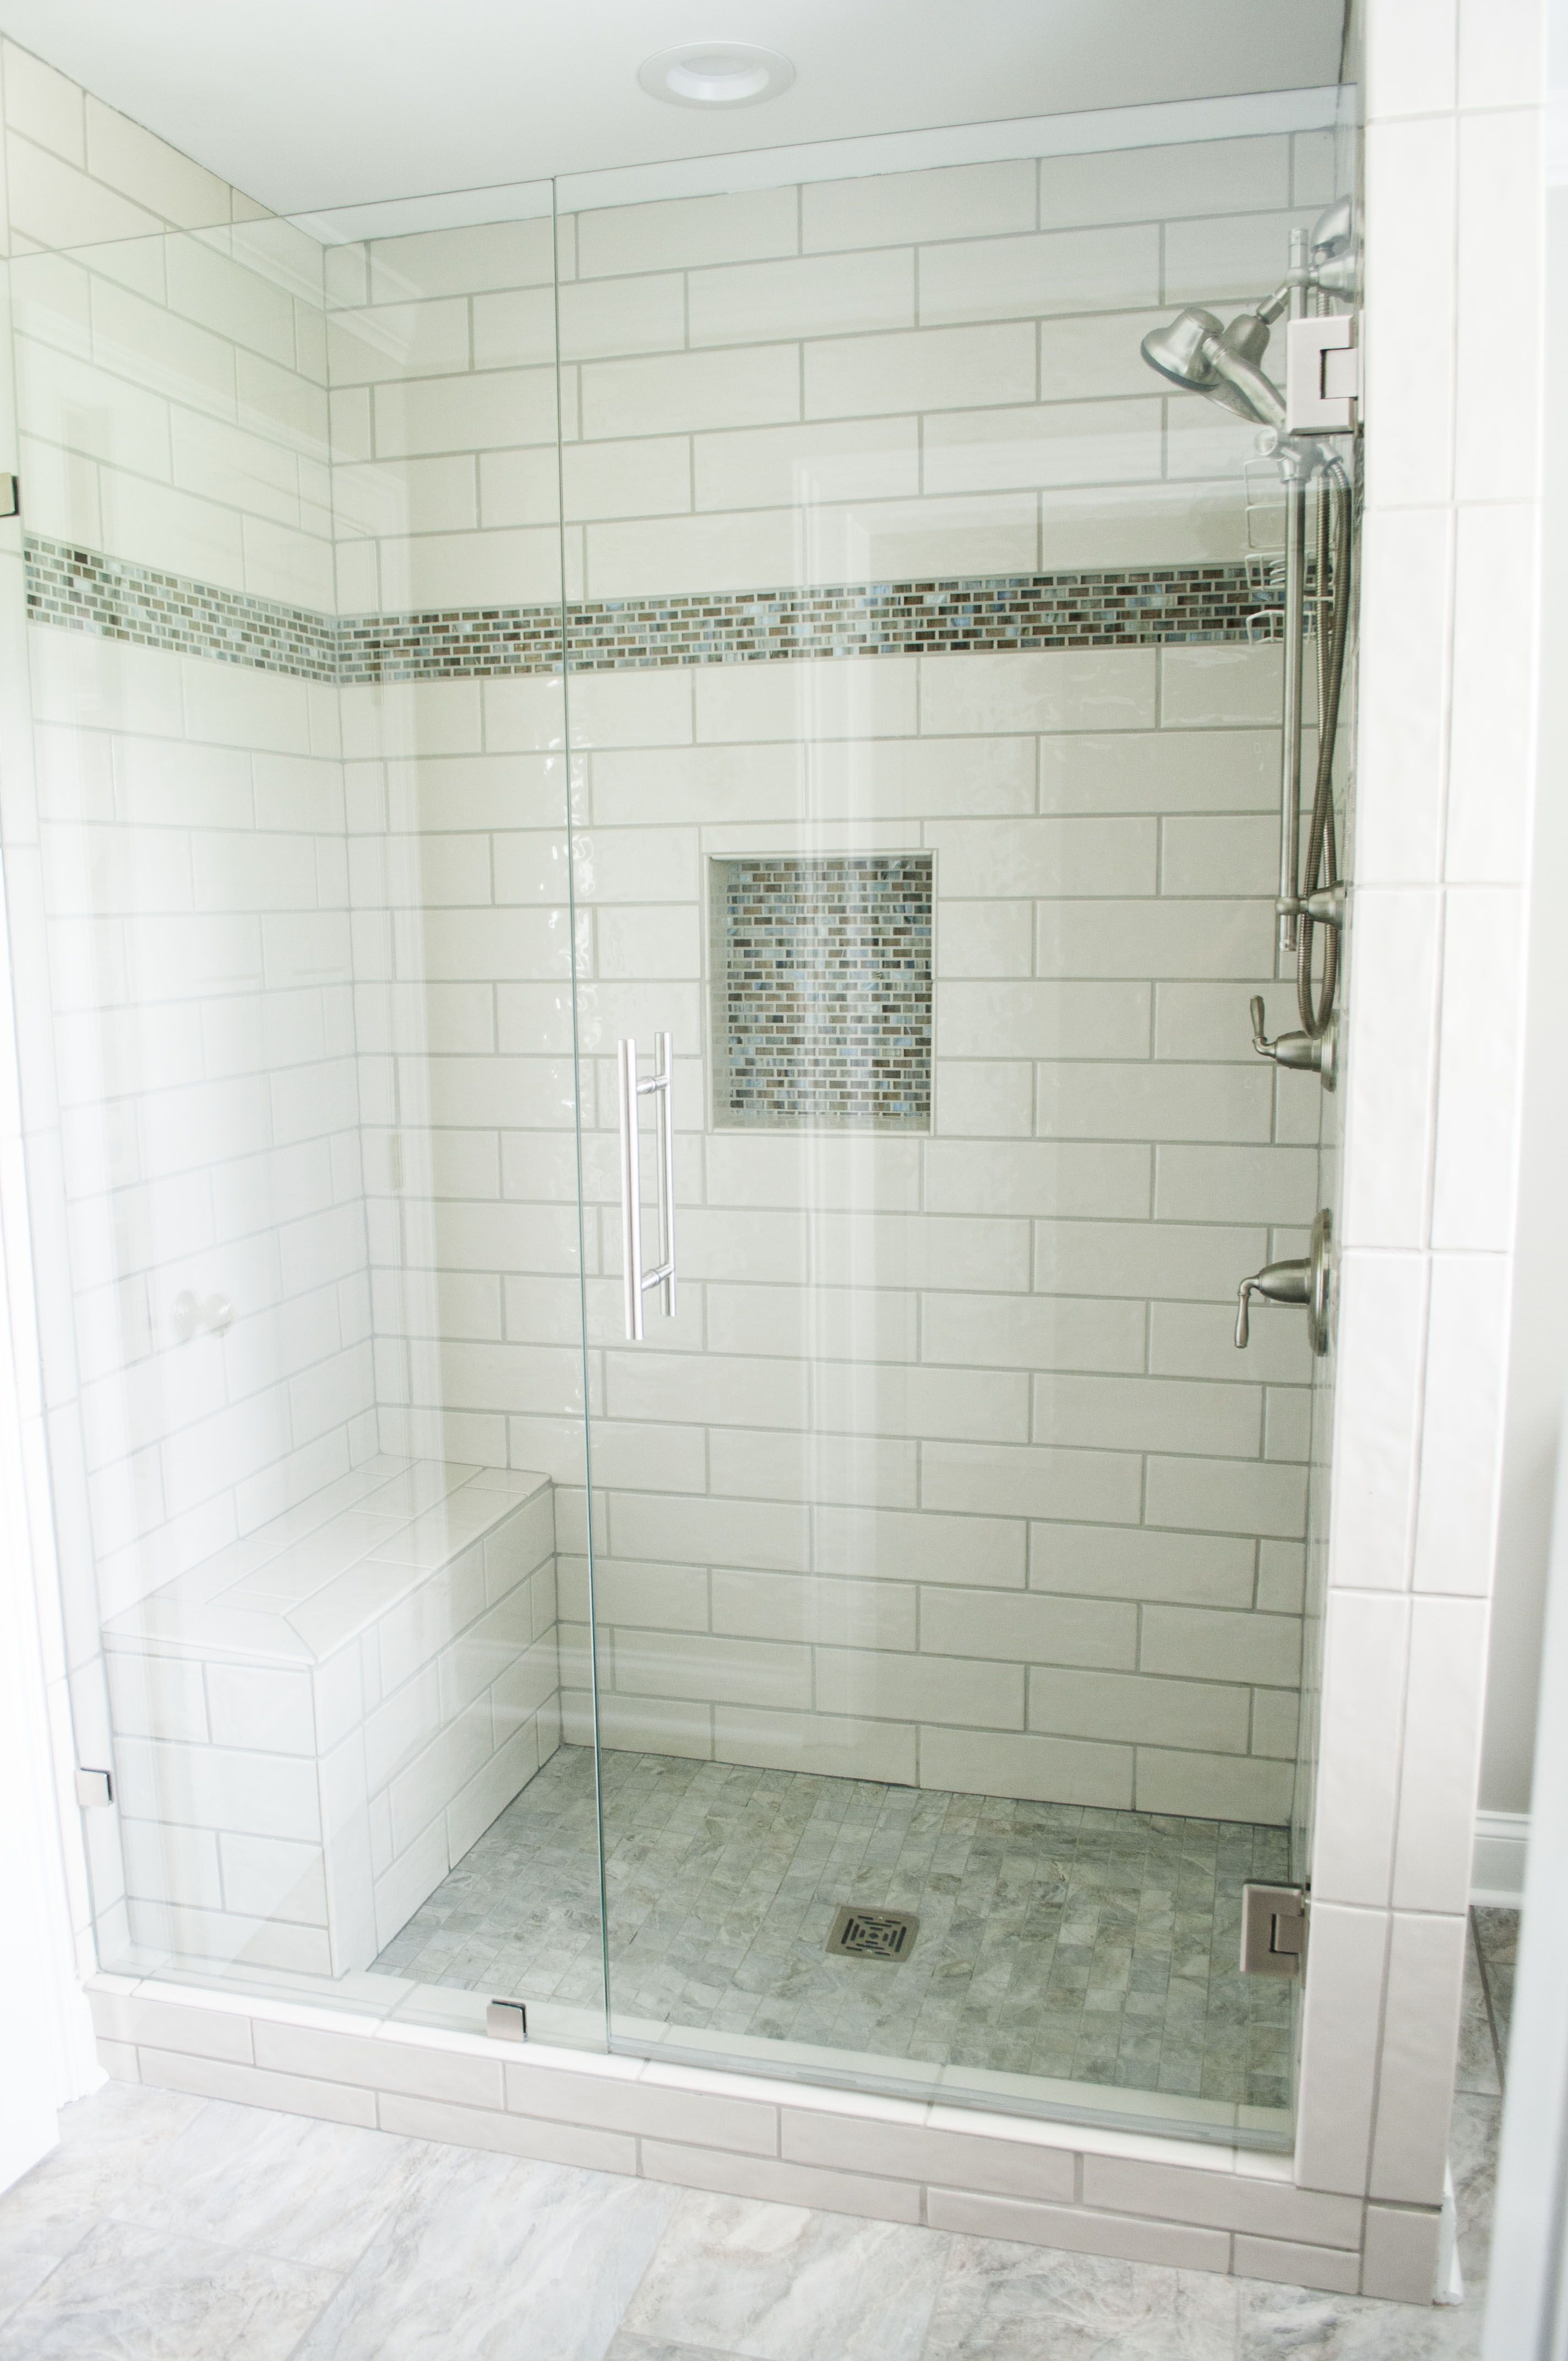 4x12 subway tile with mix mosaic accent. Frameless shower ...